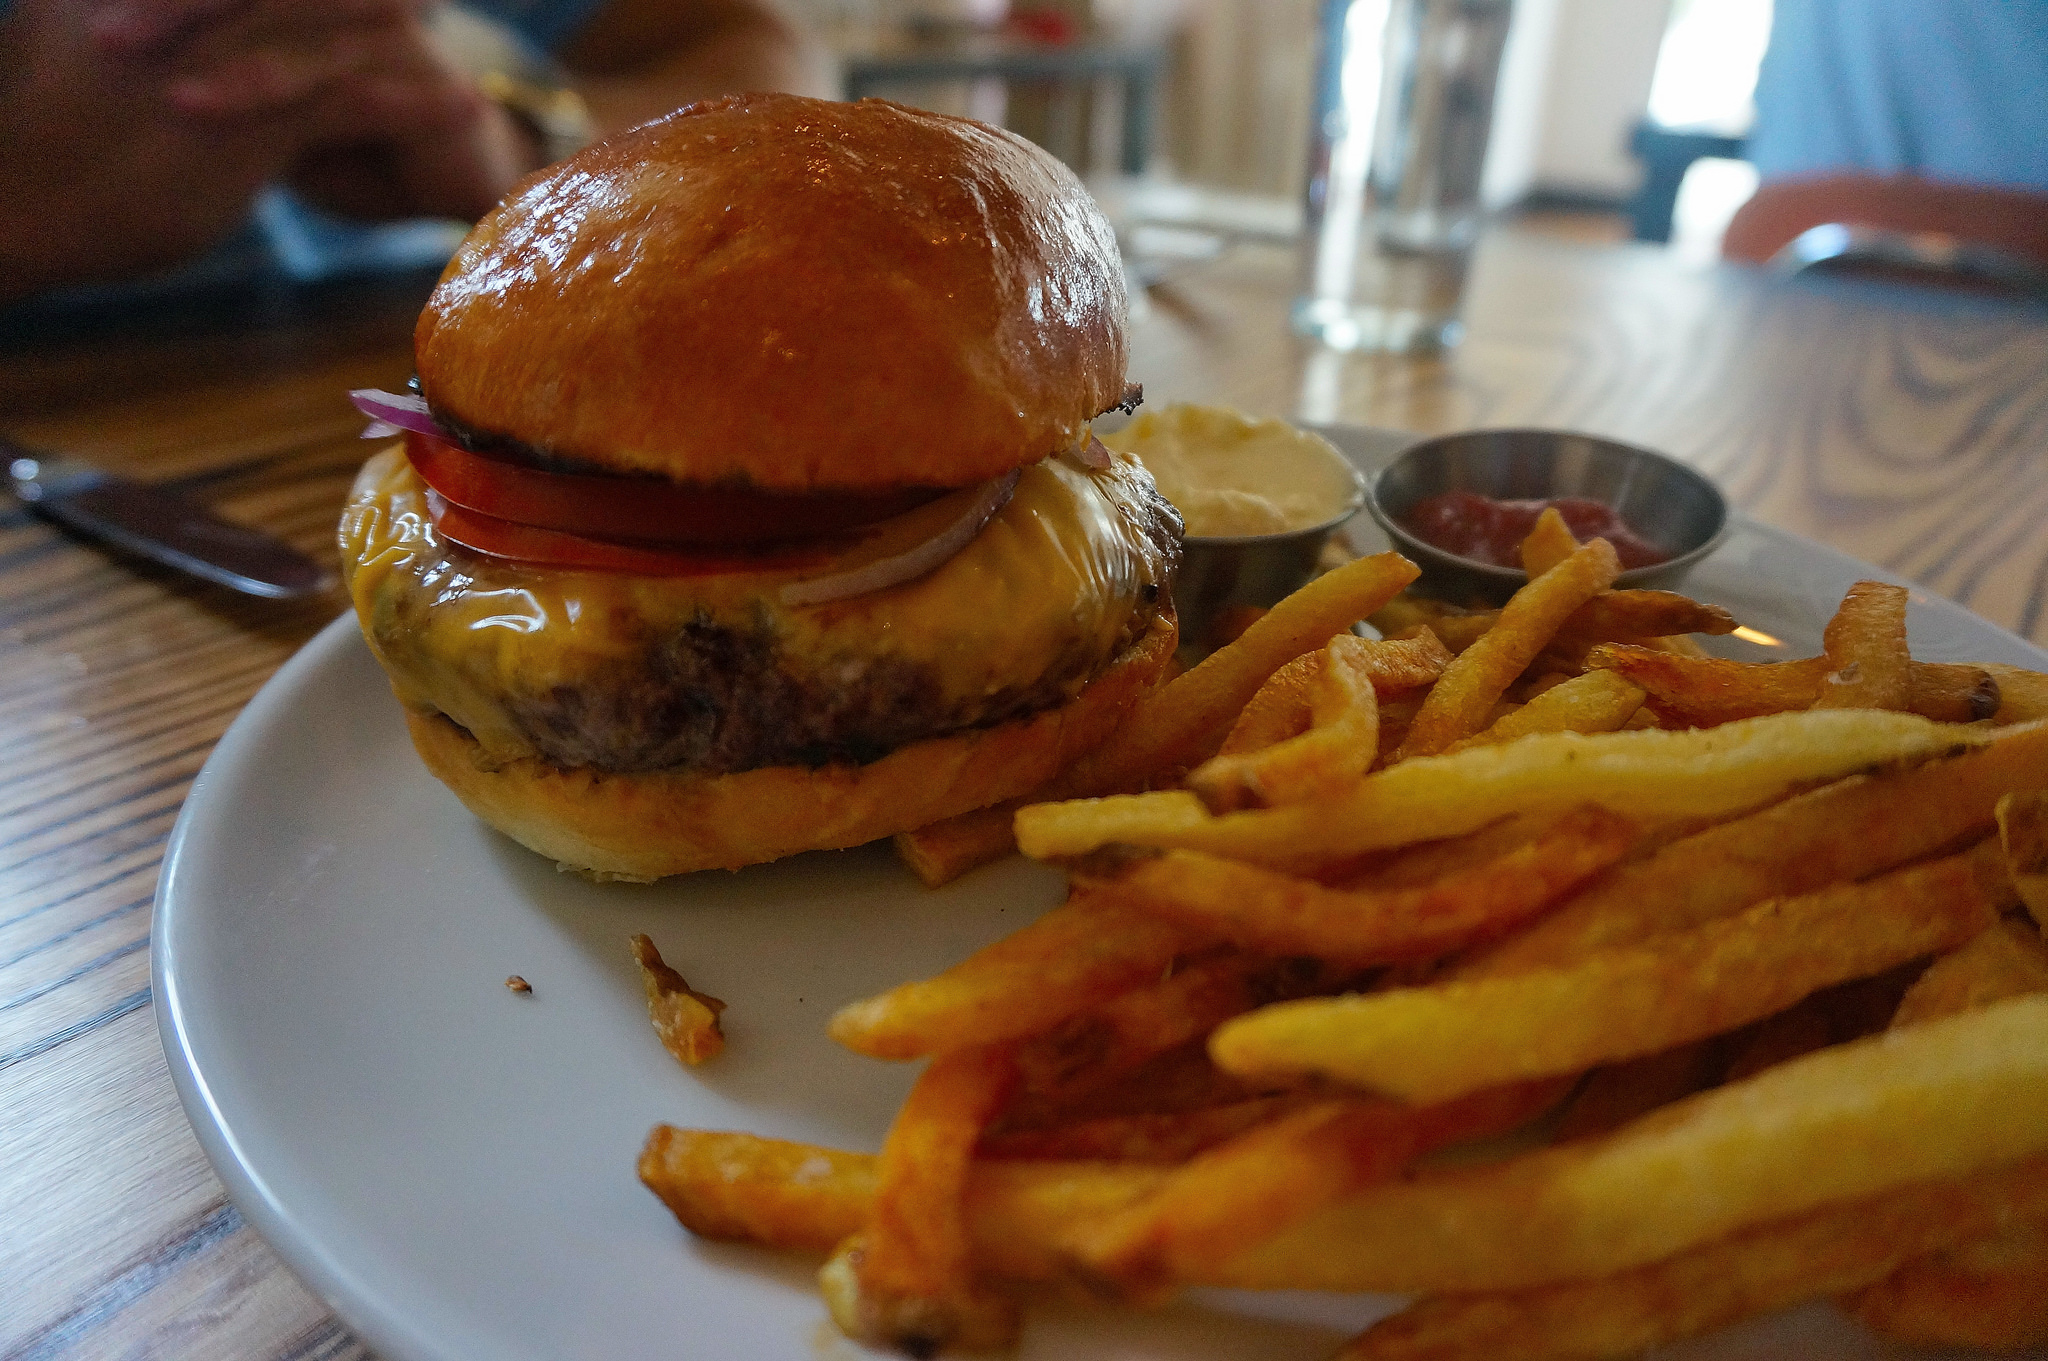 This straight forward, dry aged chuck burger was anything but average